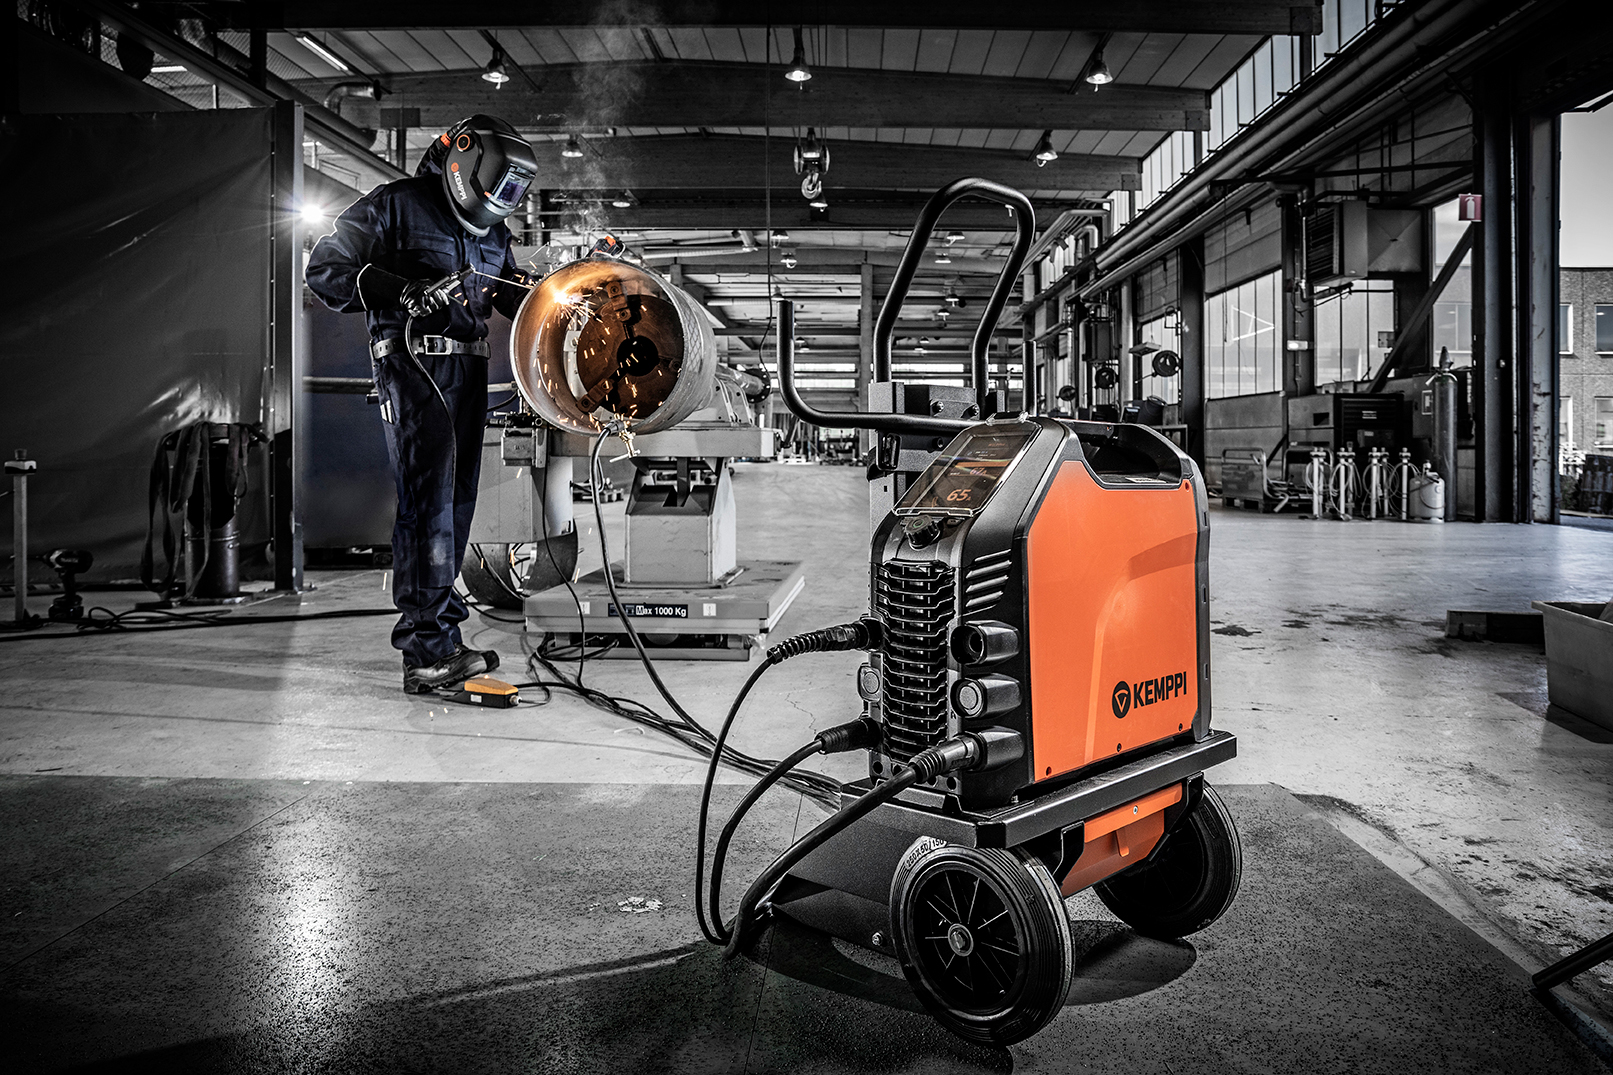 The new master of MMA welding, Master 315 guarantees optimal welding performance and fast parameter setting.